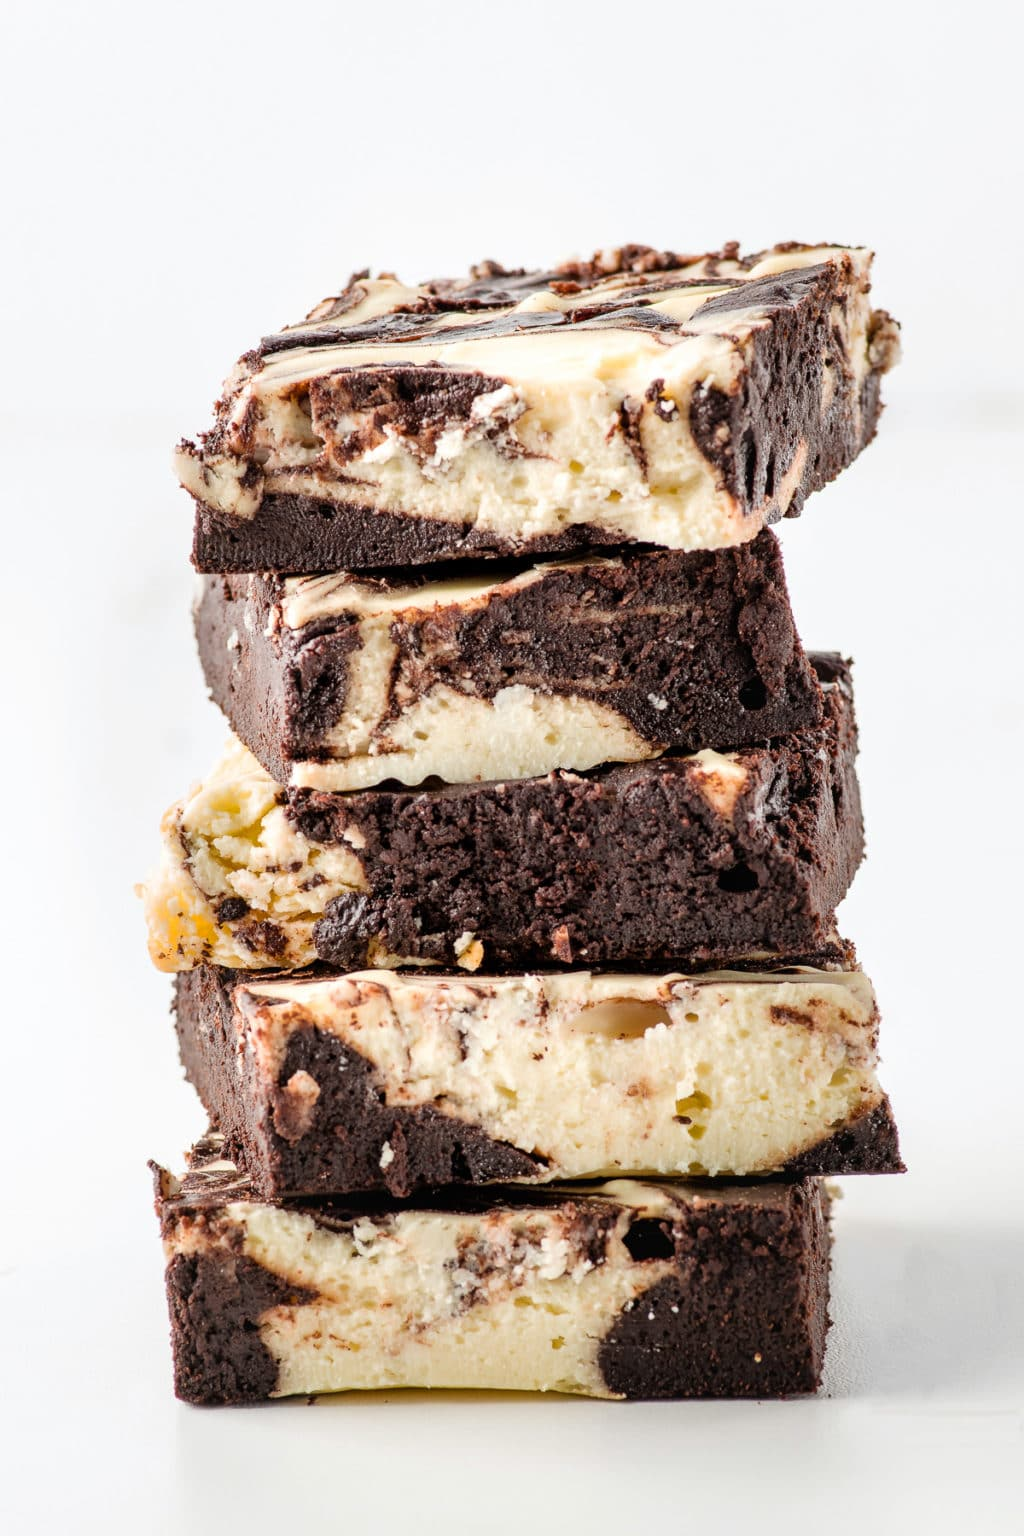 A stack of keto cheesecake brownies against a bright white background.